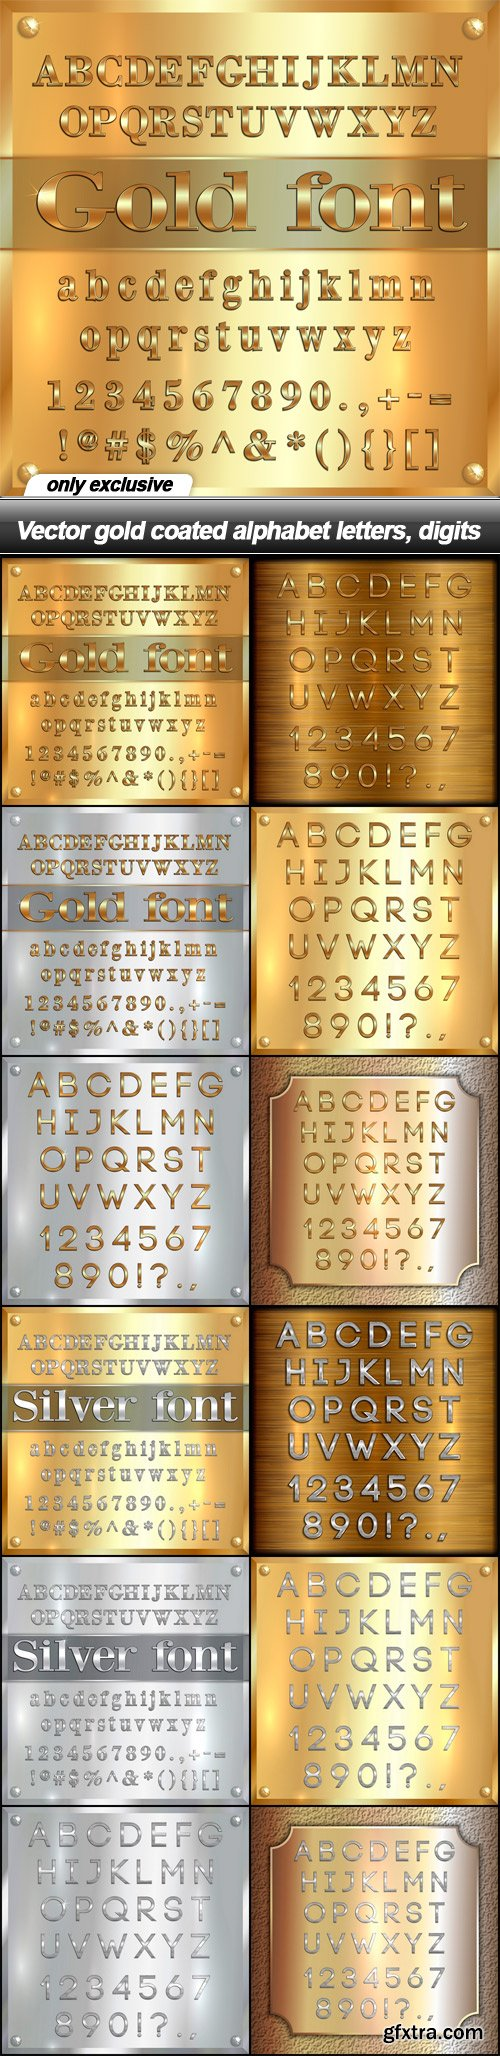 Vector gold coated alphabet letters, digits - 12 EPS